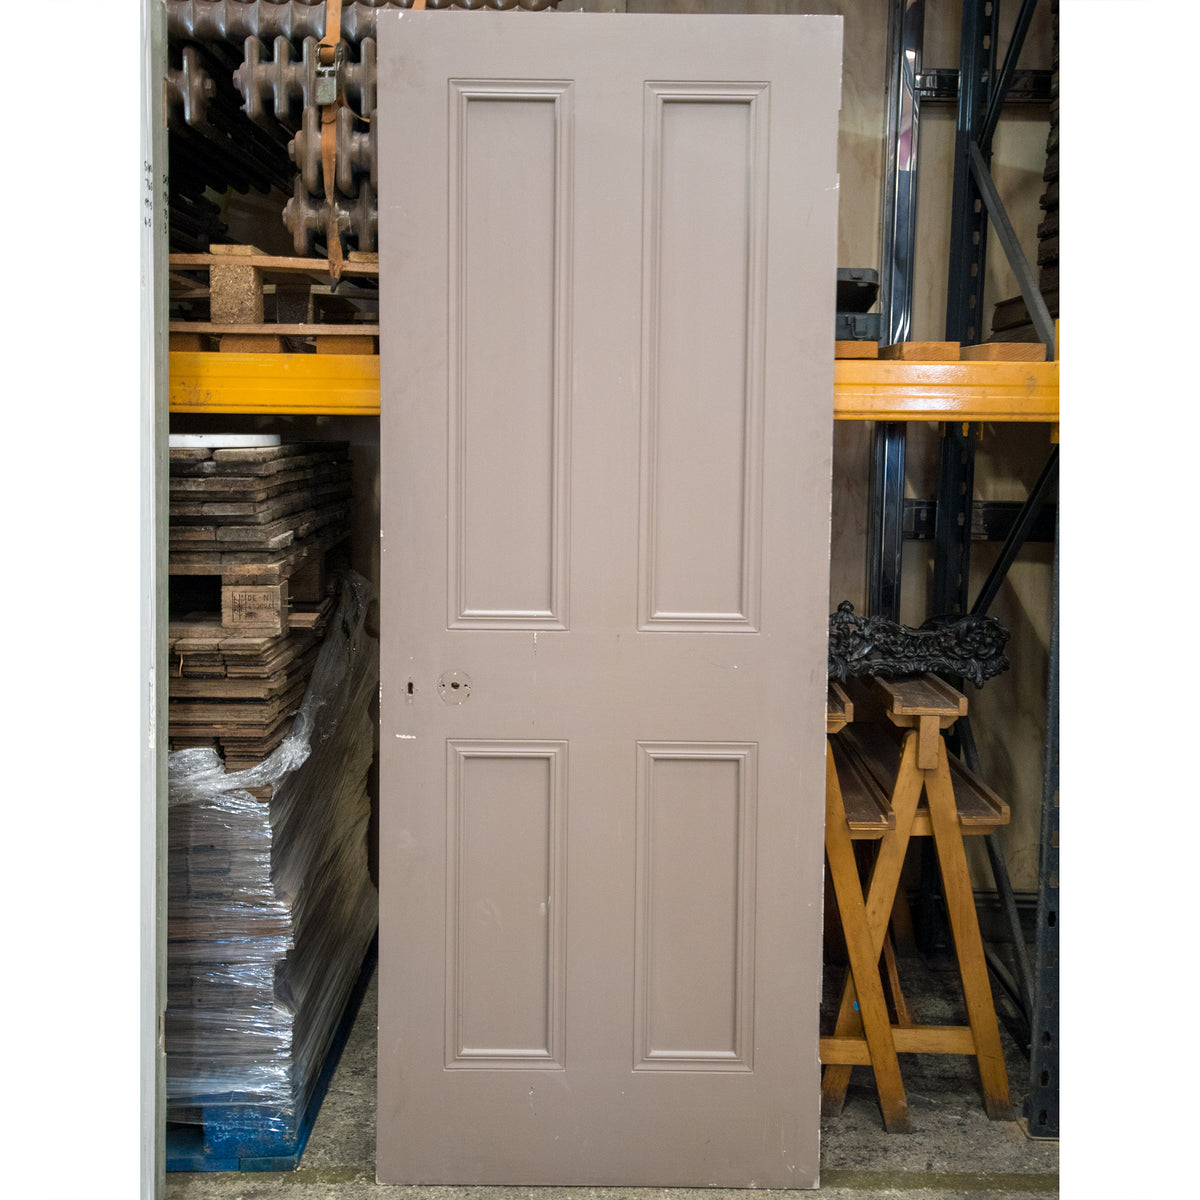 Reclaimed Victorian Style 4 Panel Door - 197cm x 76cm | The Architectural Forum